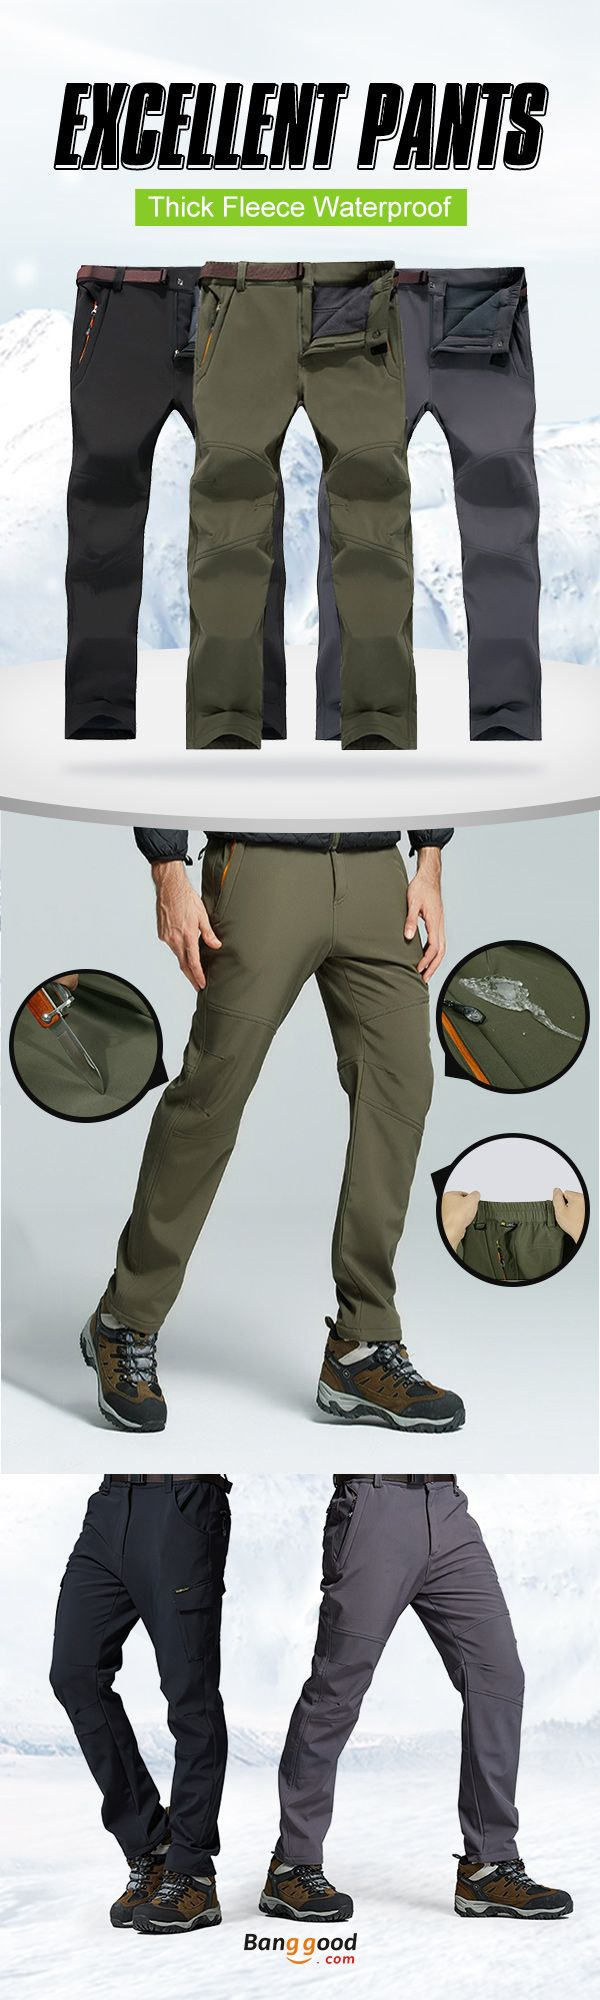 Thick & Waterproof. Size: S - 5XL. Outdoor Pants for Winter. 3 Colors Optional. US$34.69 + Free Shipping.